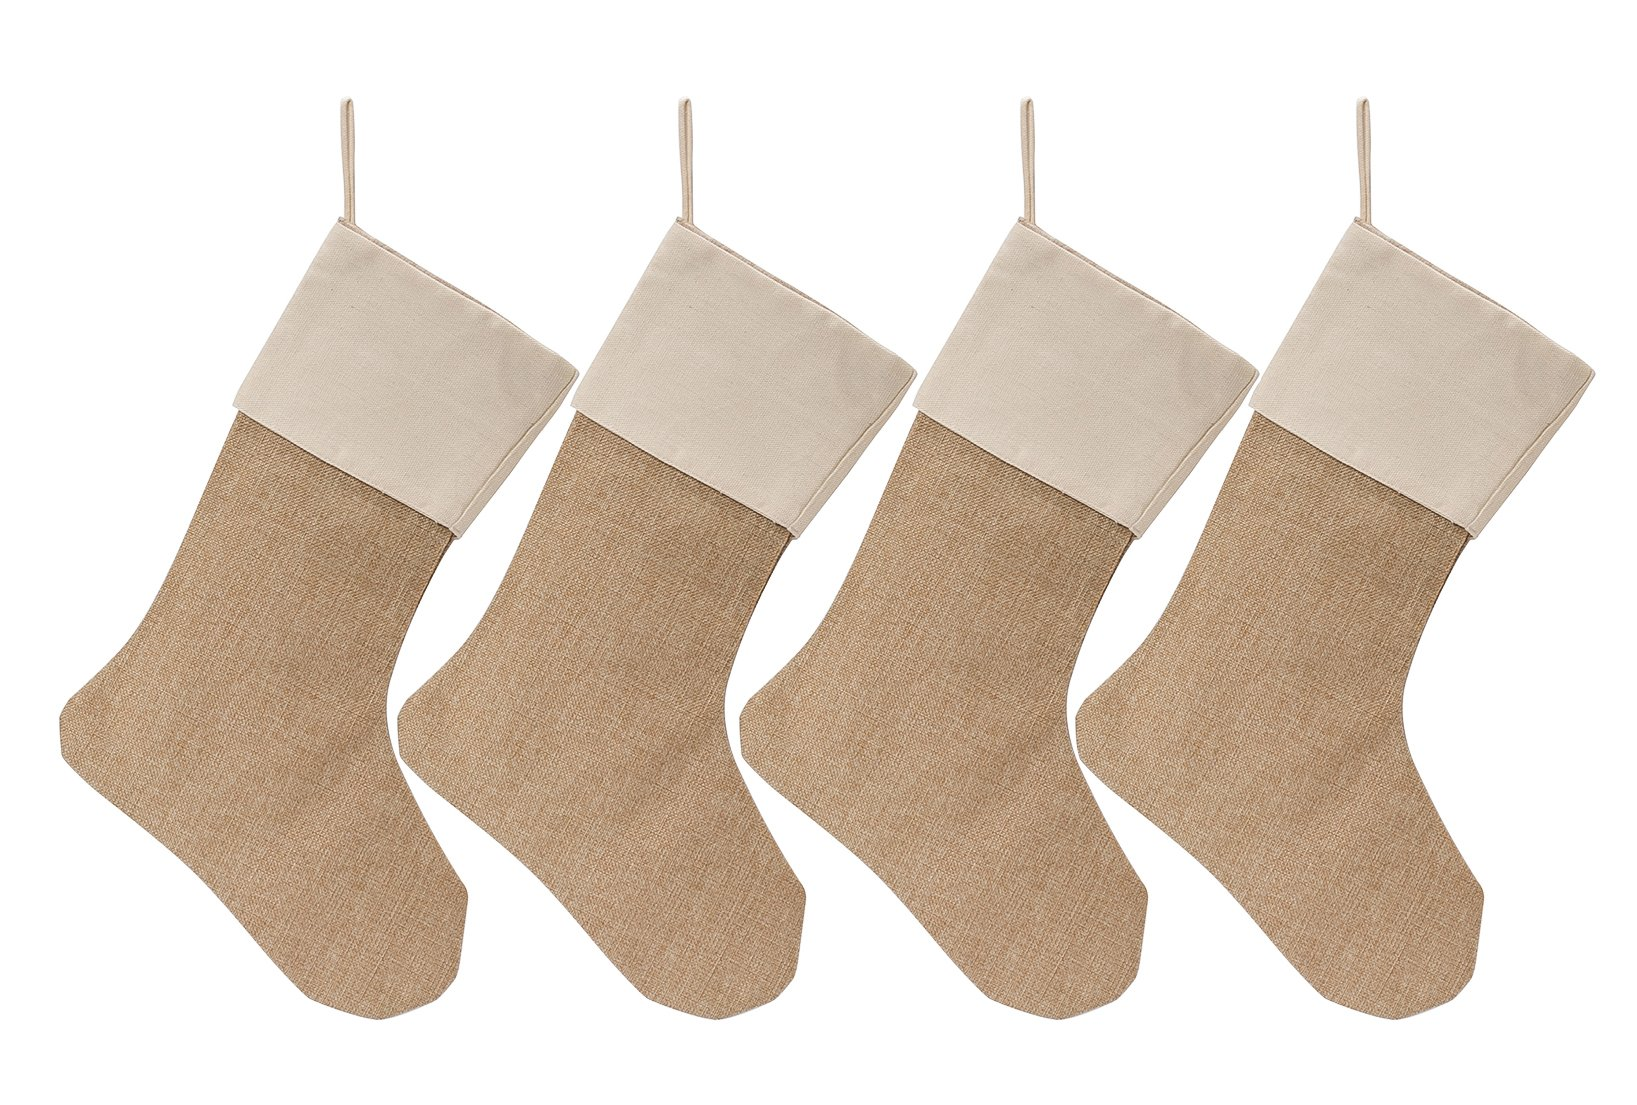 WeiVan Christmas Stocking Plain Burlap Stocking Decorum, Large